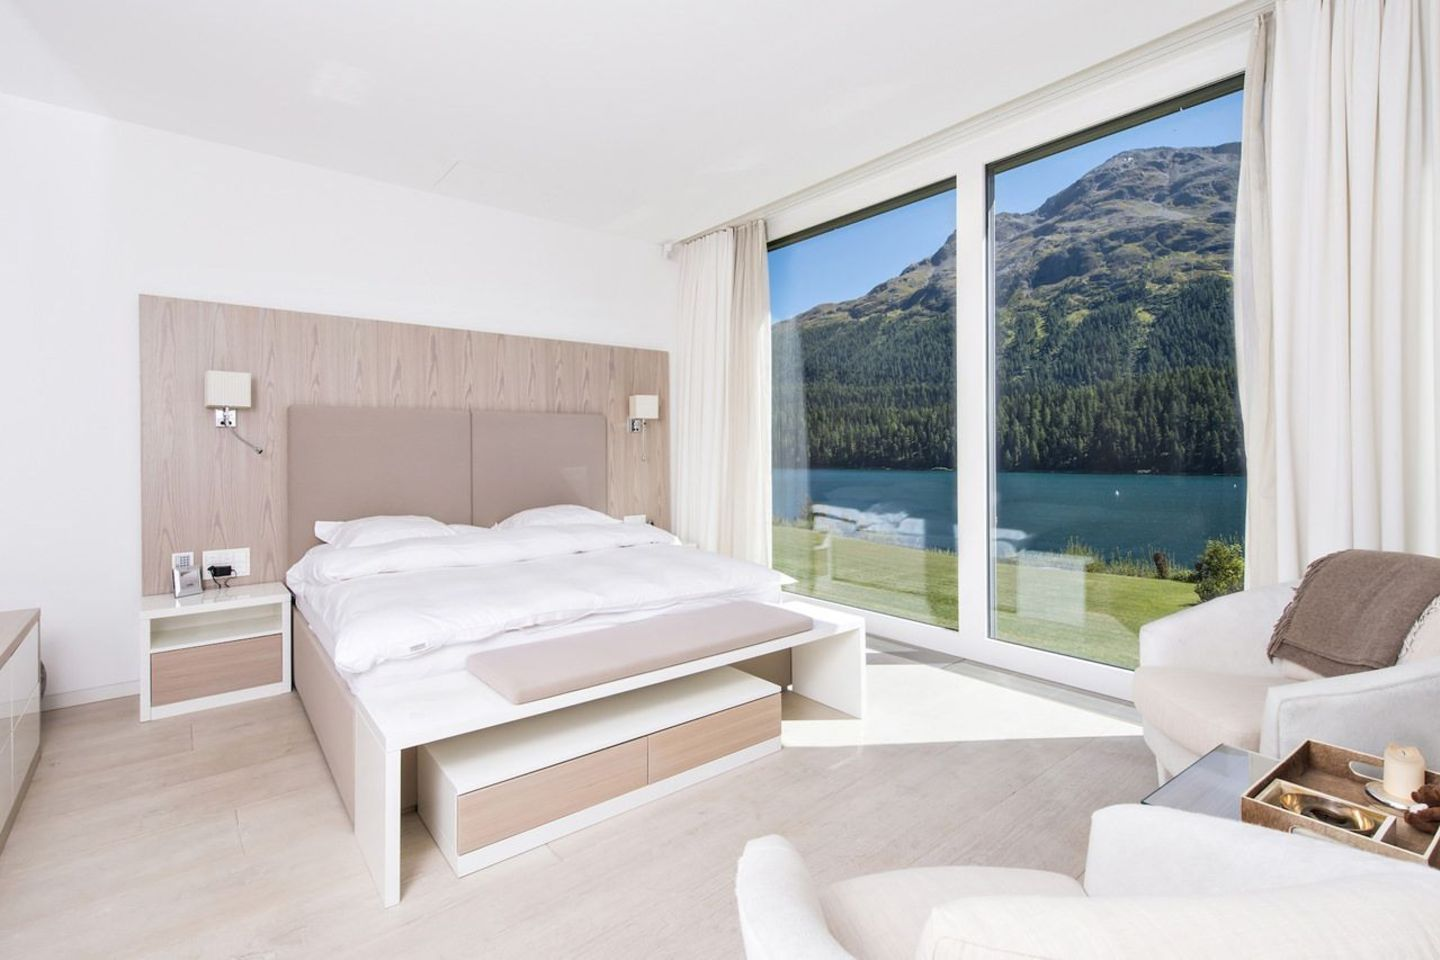 Apartment overlooking the breathtaking lake St. Moritz